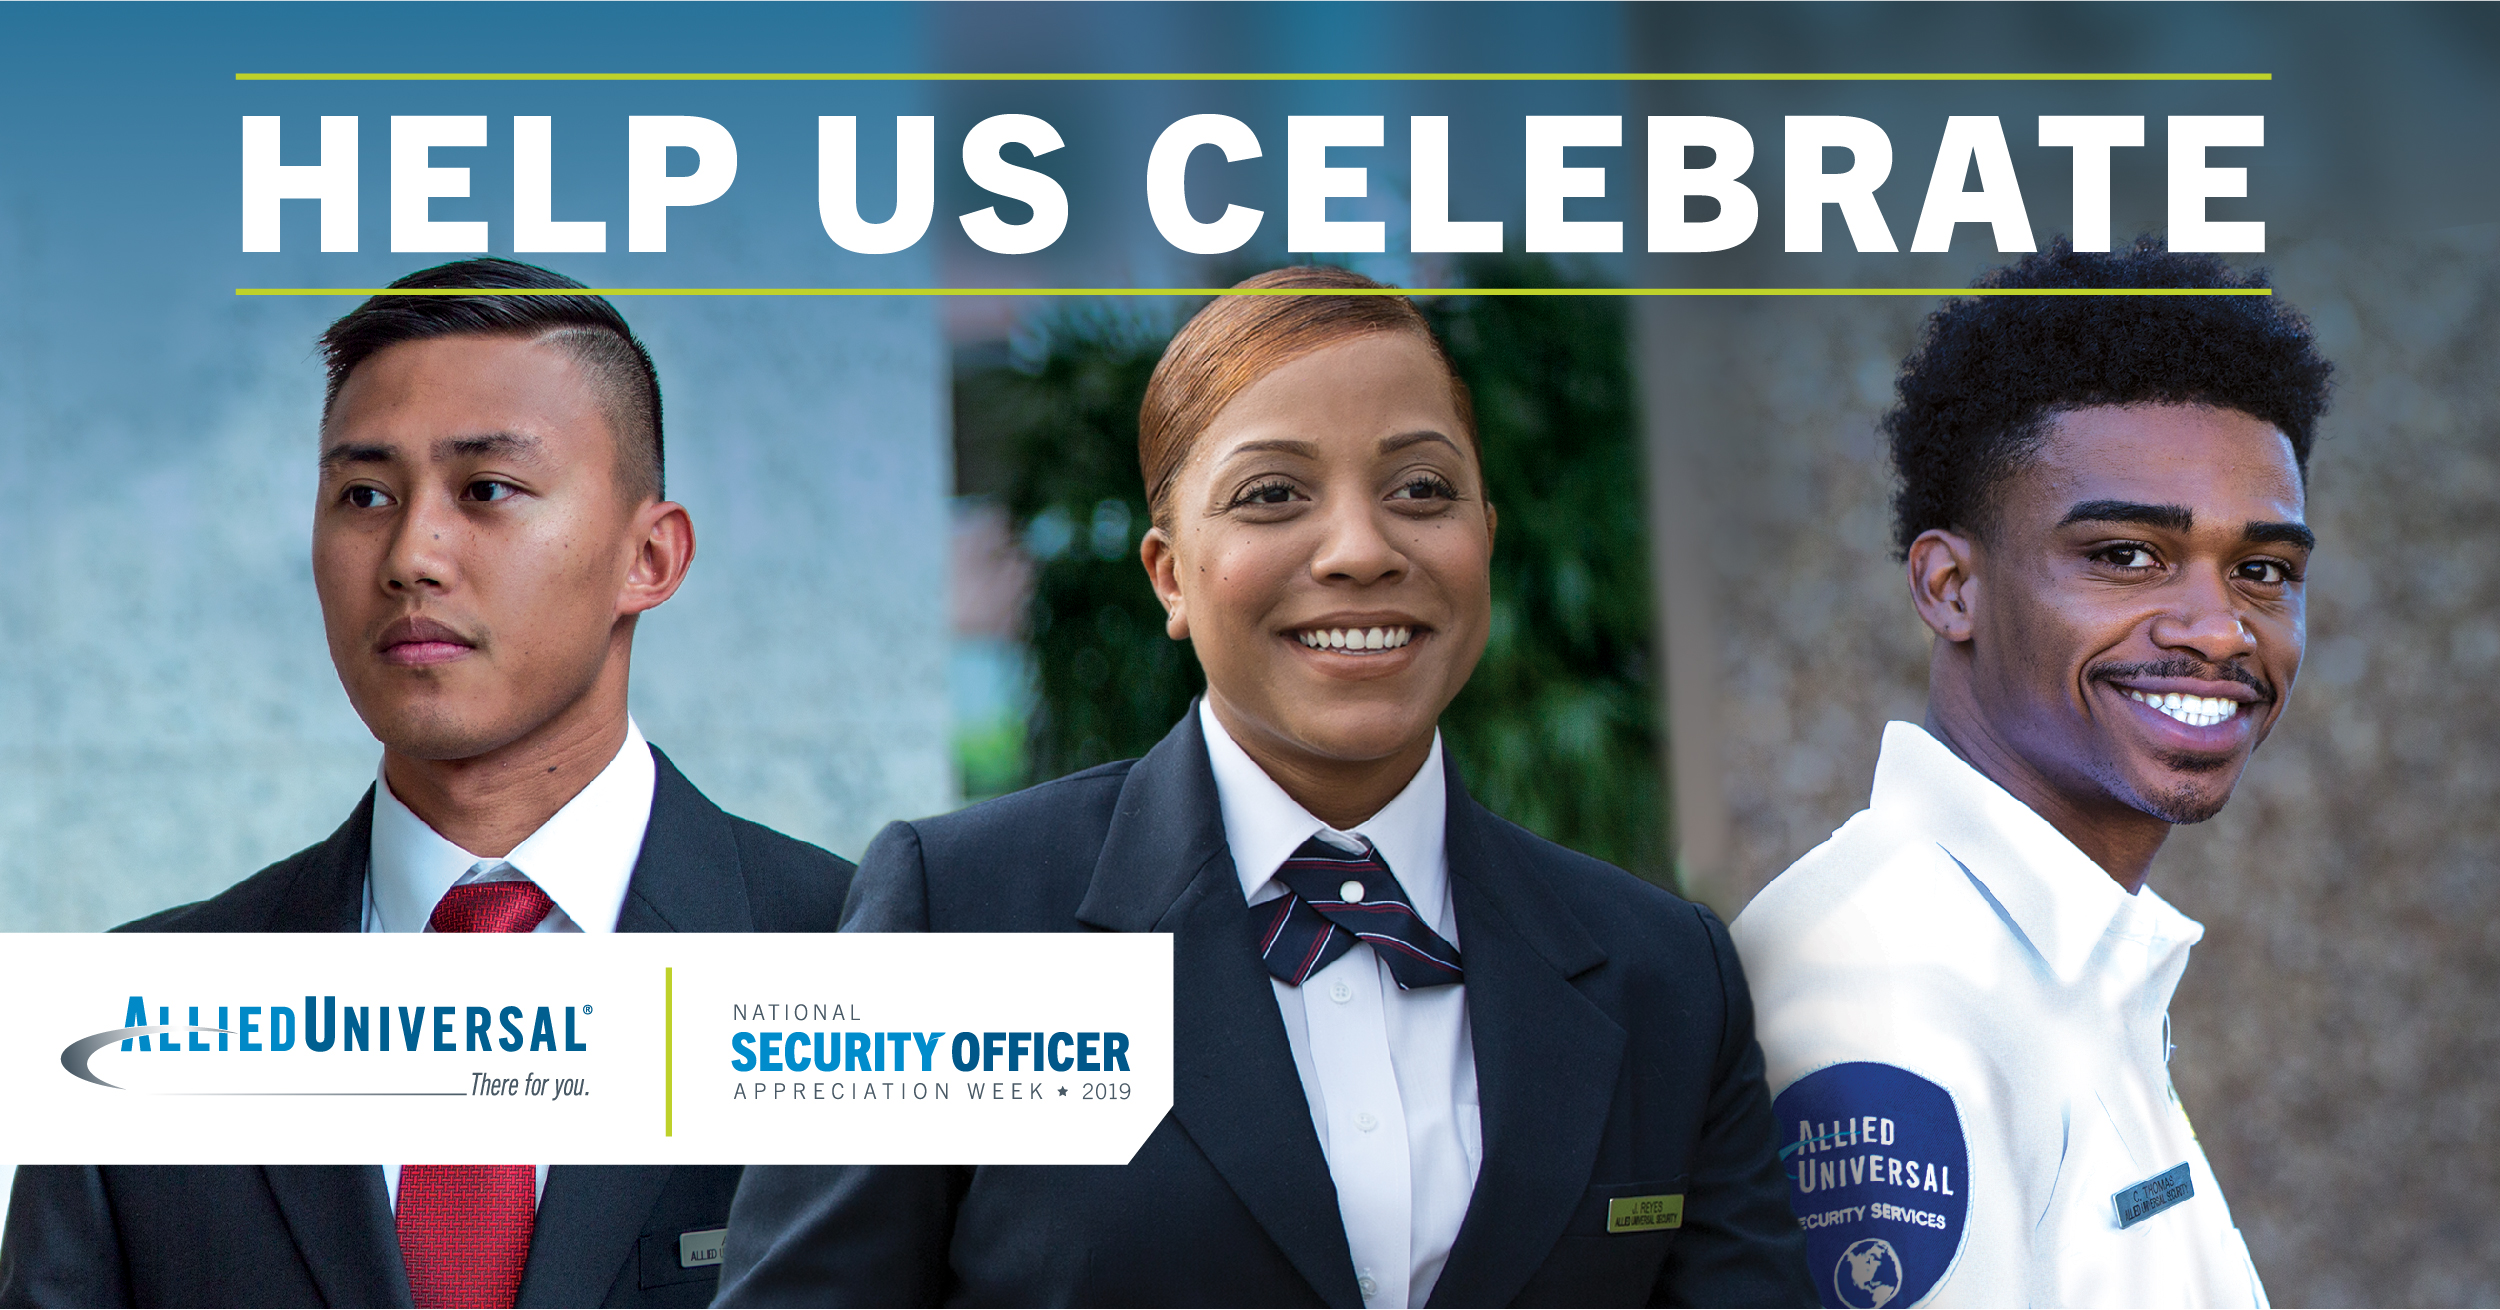 Security officers smiling - National Security Officer Appreciation Week